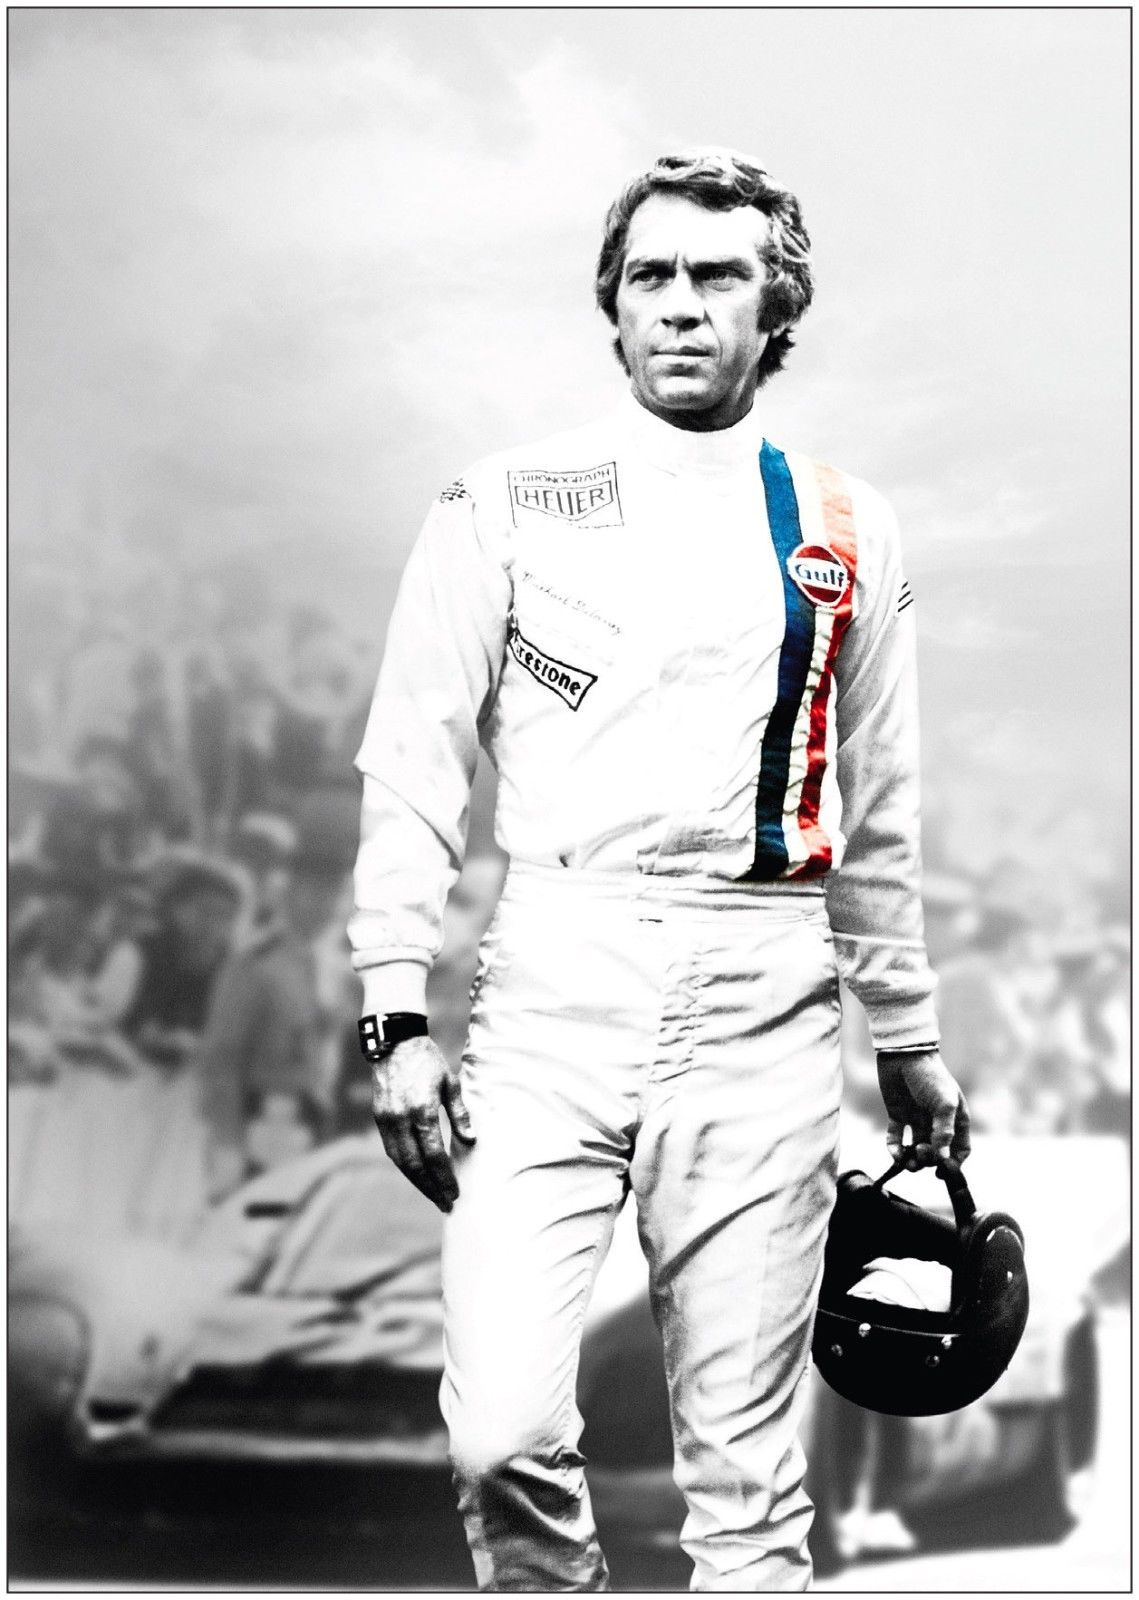 Steve McQueen Statues figures Collectibles at Statuesque Ltd